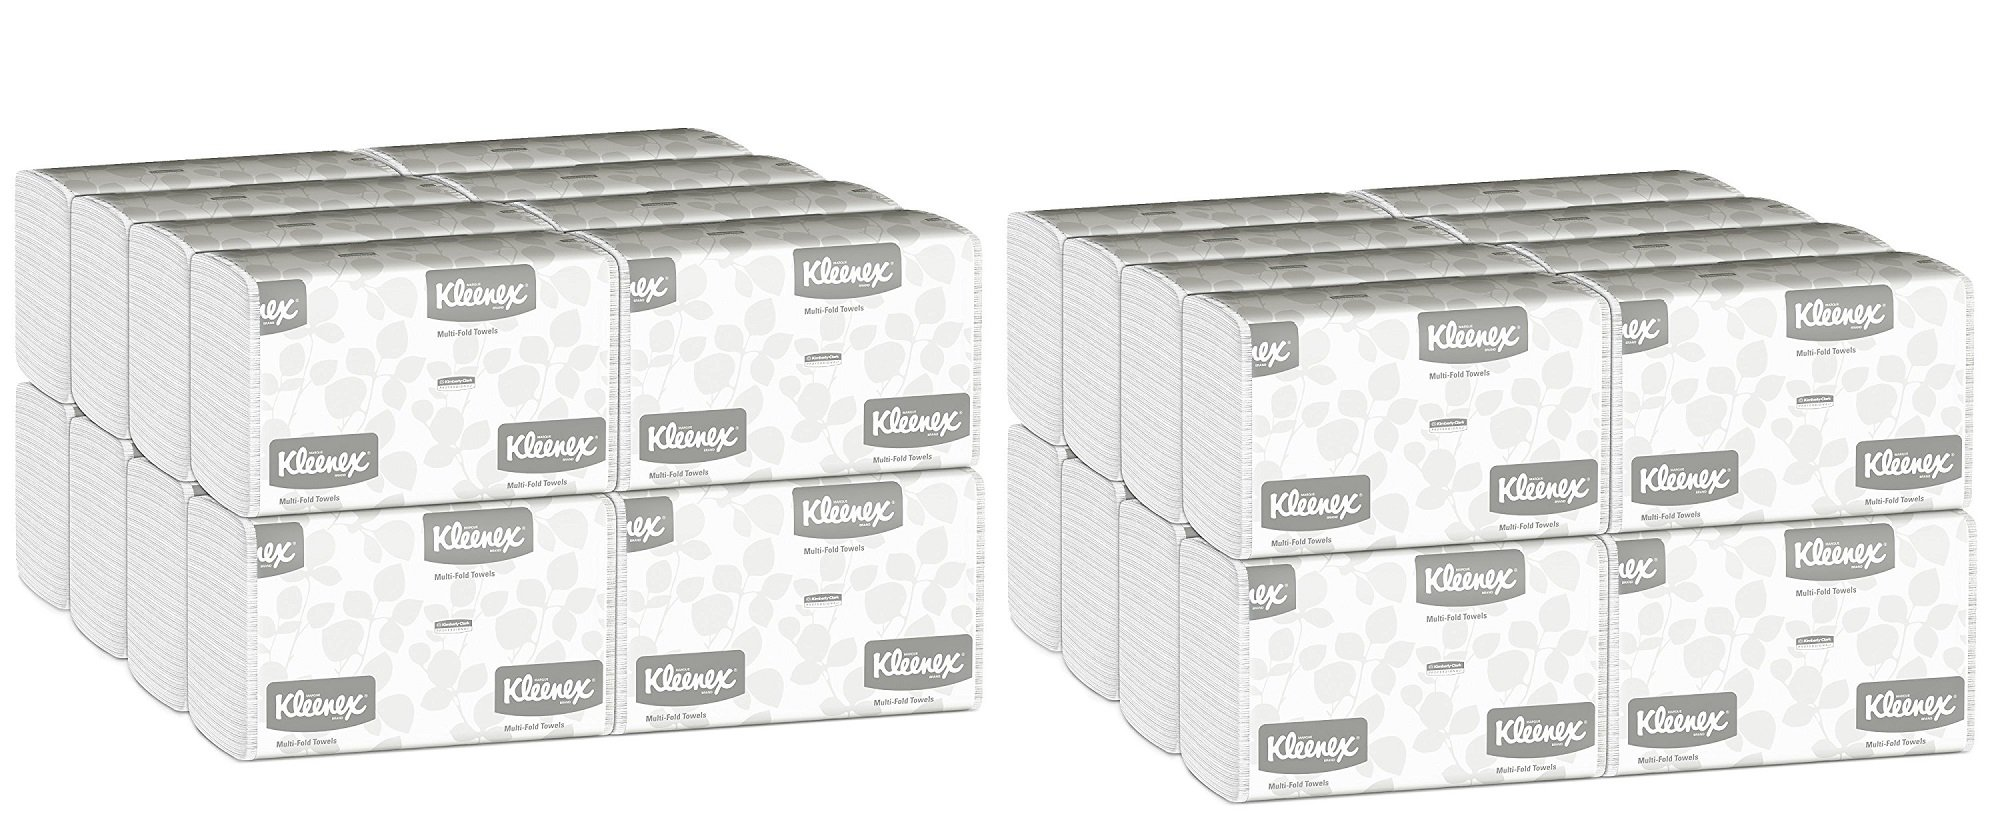 Kleenex Multifold Paper Towels (01890), White, Case of 32 Packs DKrvTW, 150 Tri Fold Paper Towels per Pack